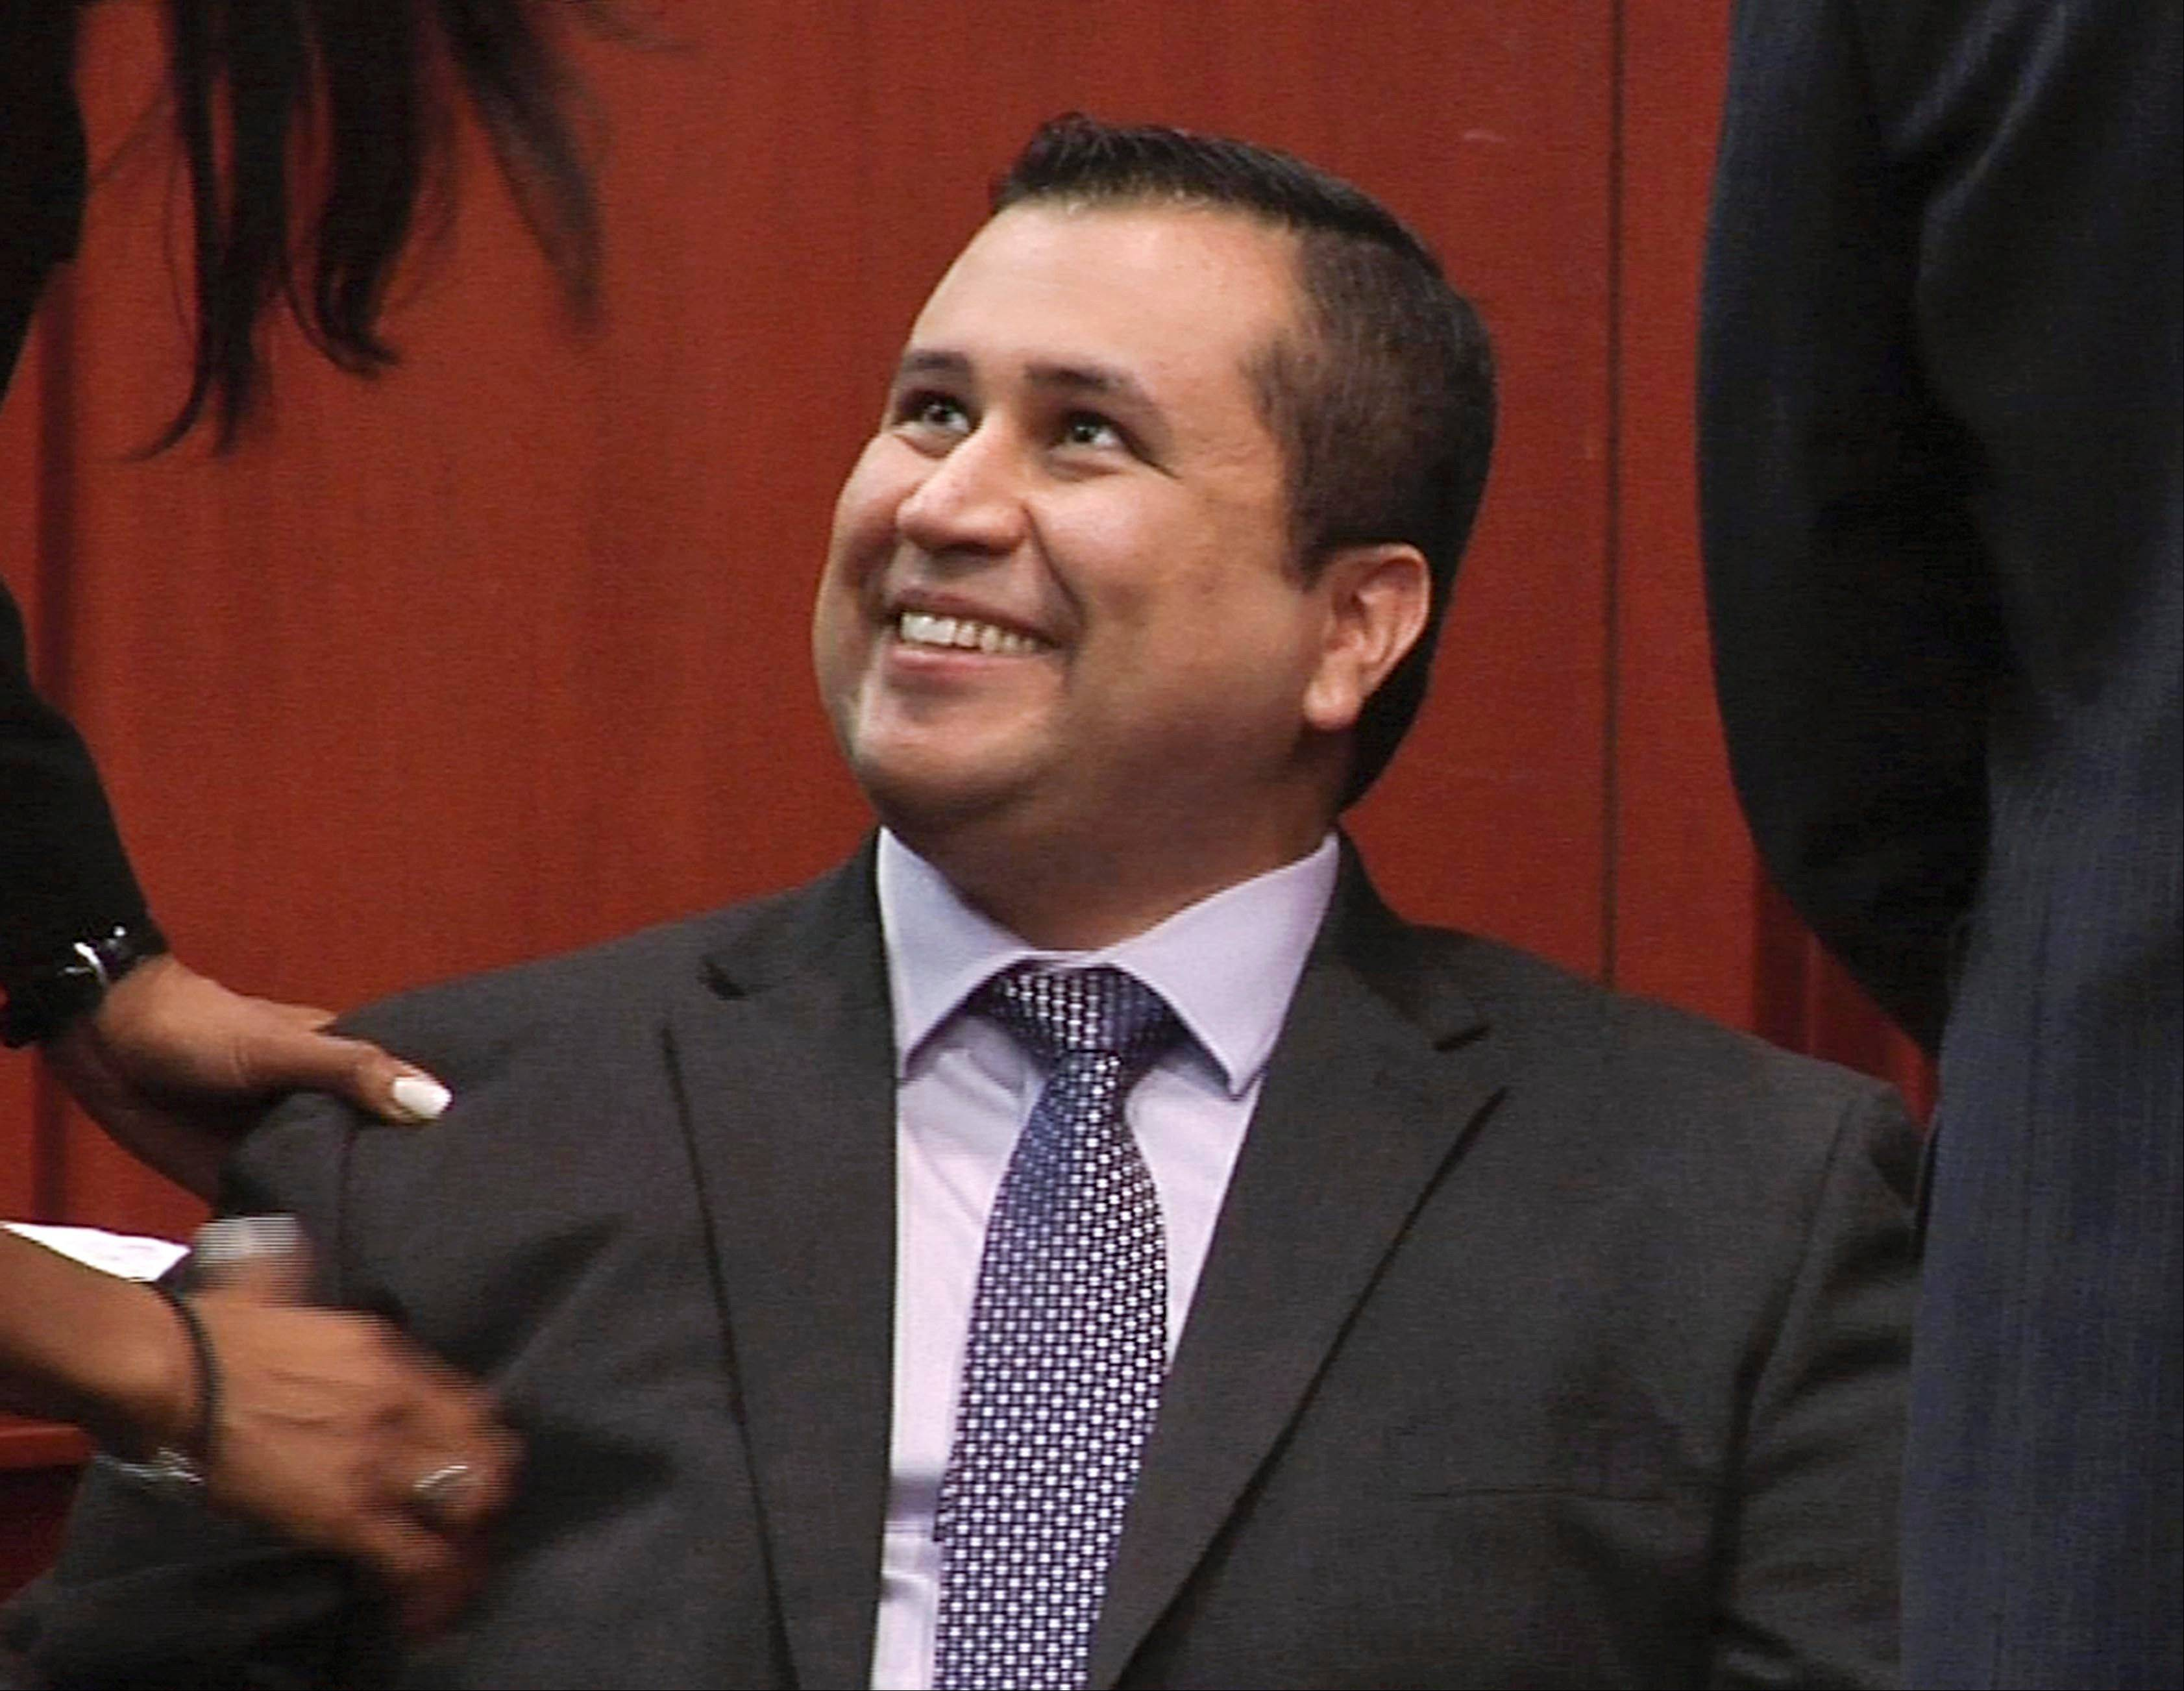 Jury acquits George Zimmerman of second-degree murder